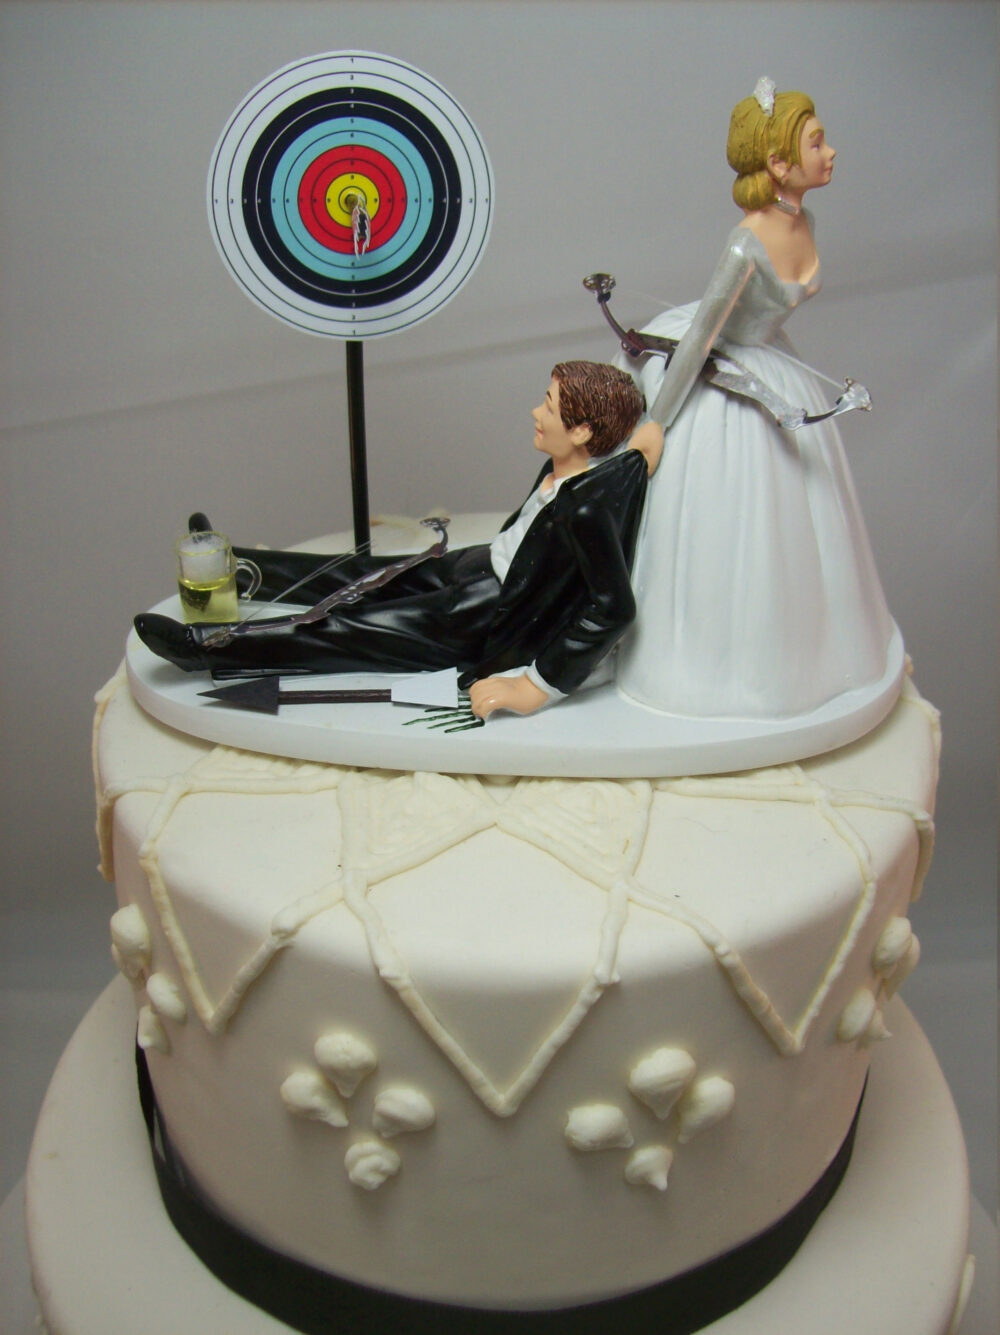 No Bow & Arrow Target Board Bride Groom Wedding Cake Topper Funny Bar Game